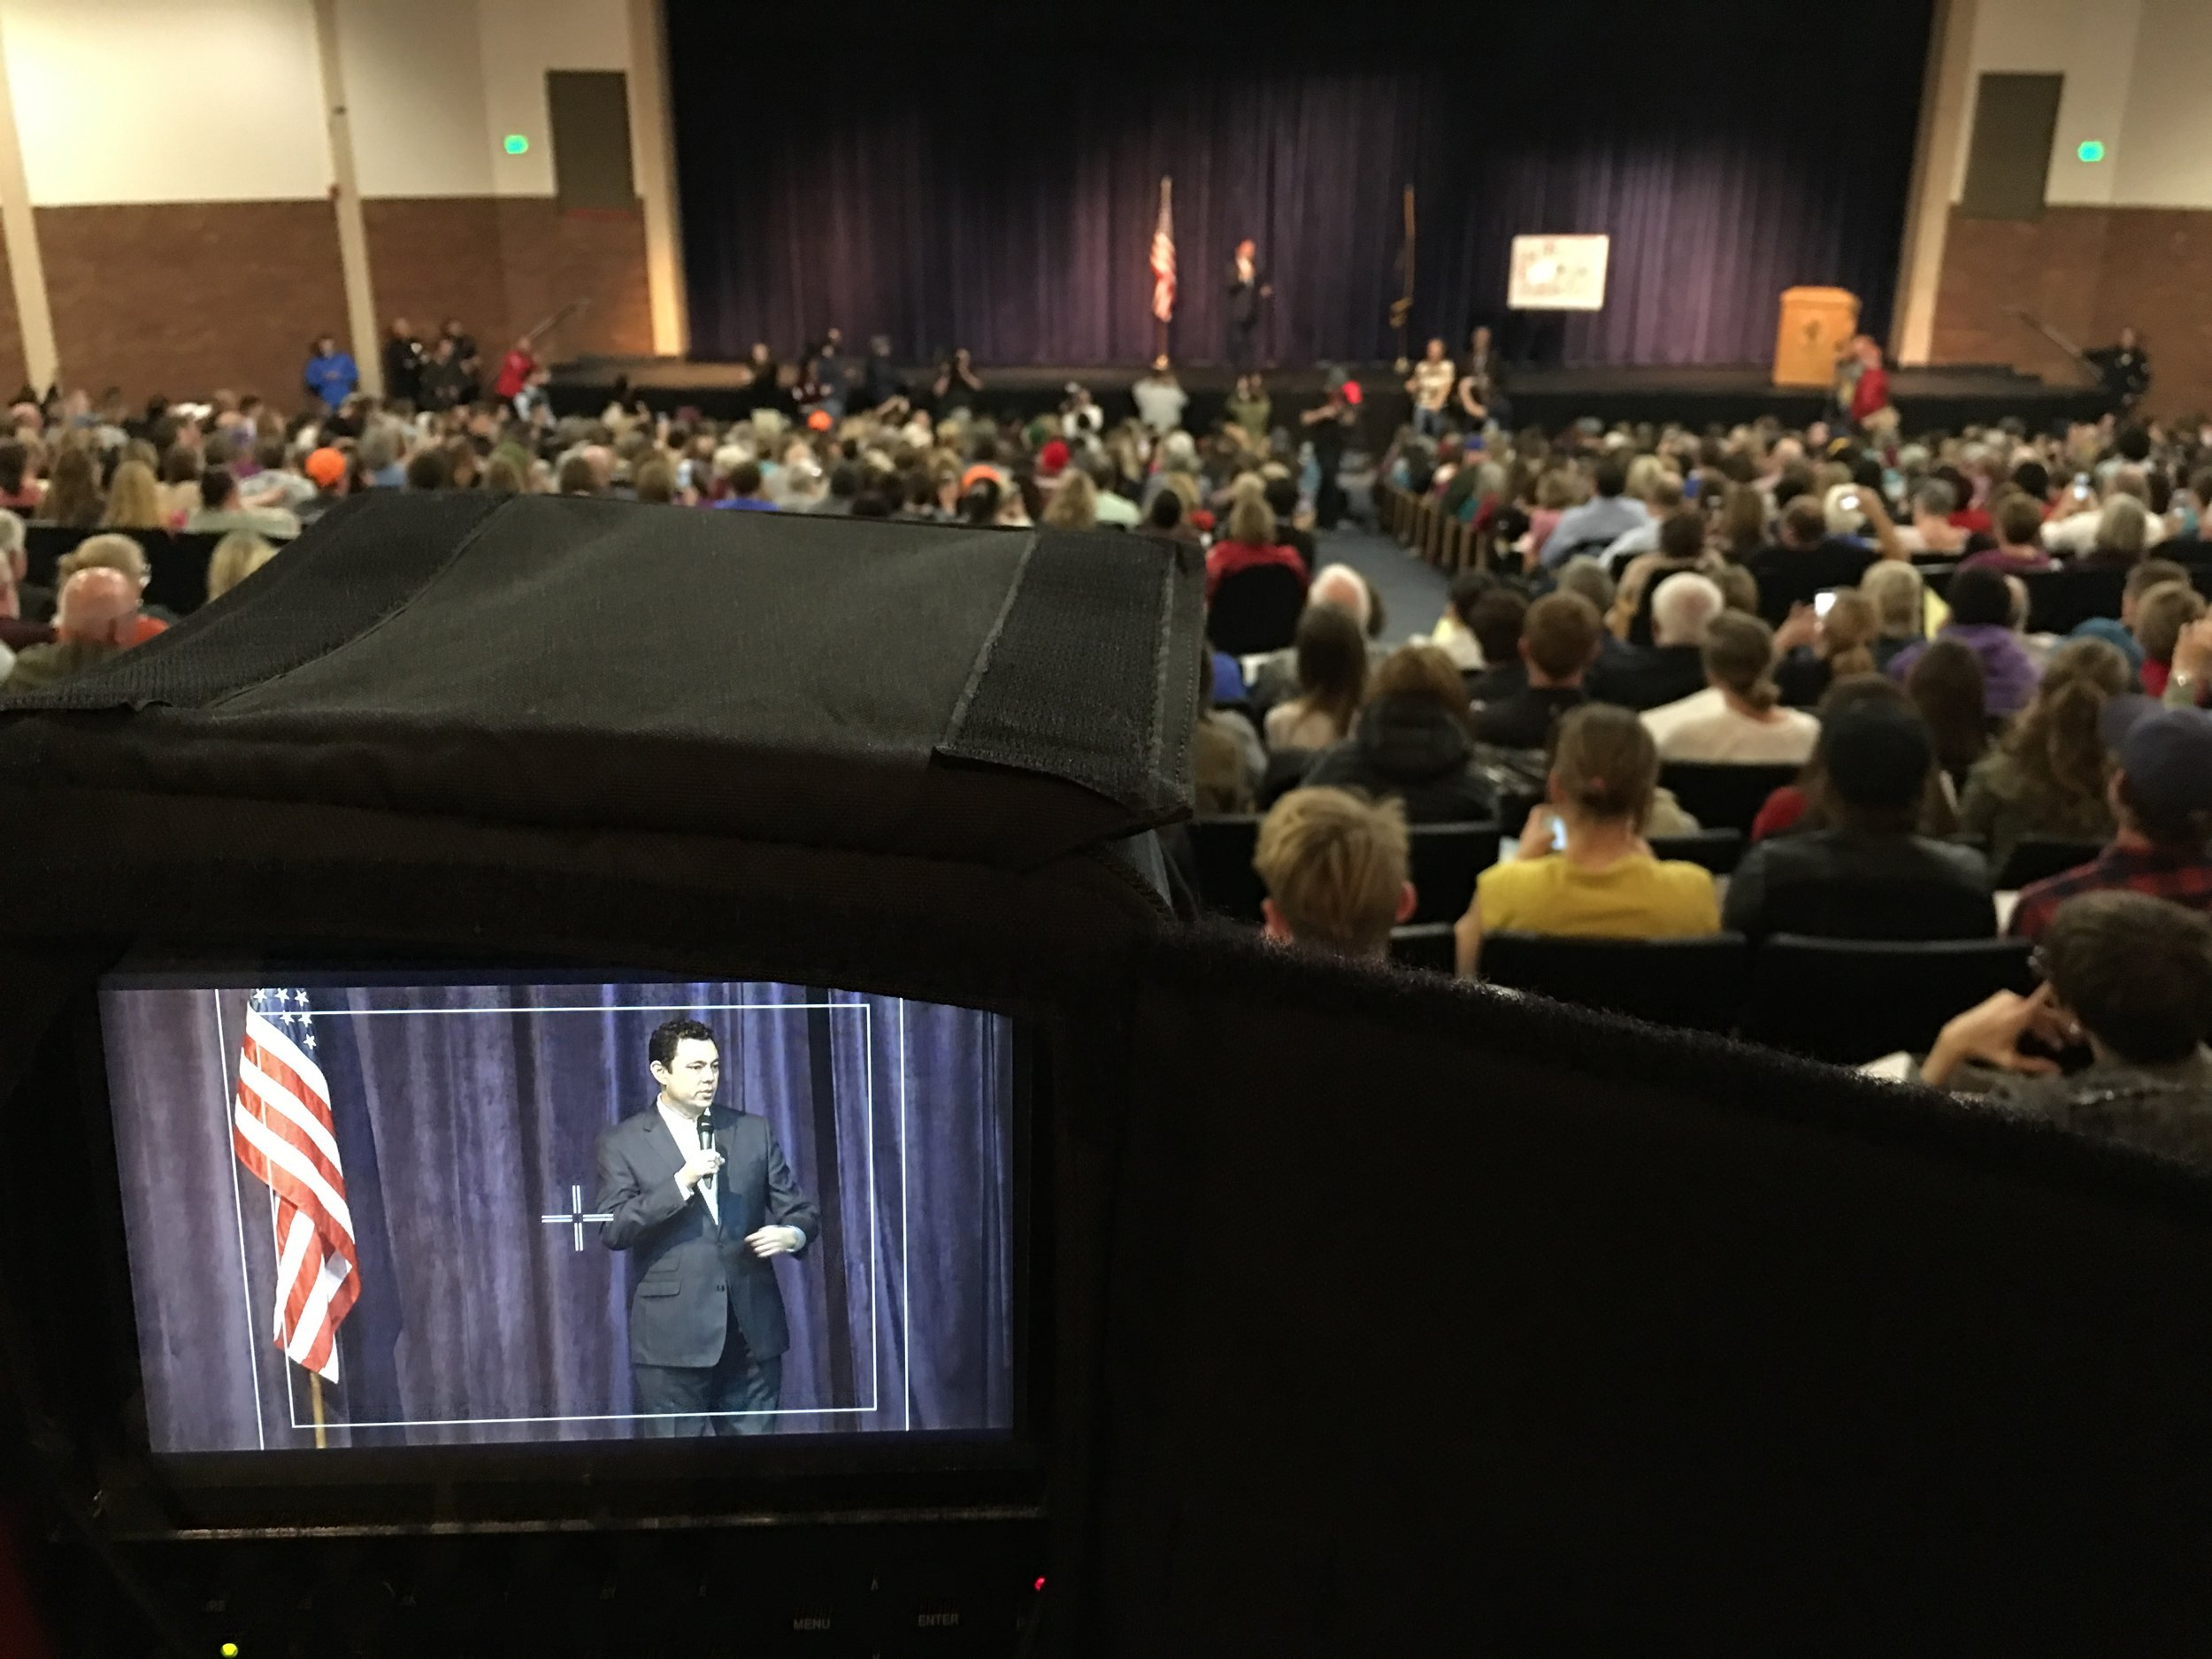 Jason Chaffetz Town Hall Meeting Salt Lake City, Utah